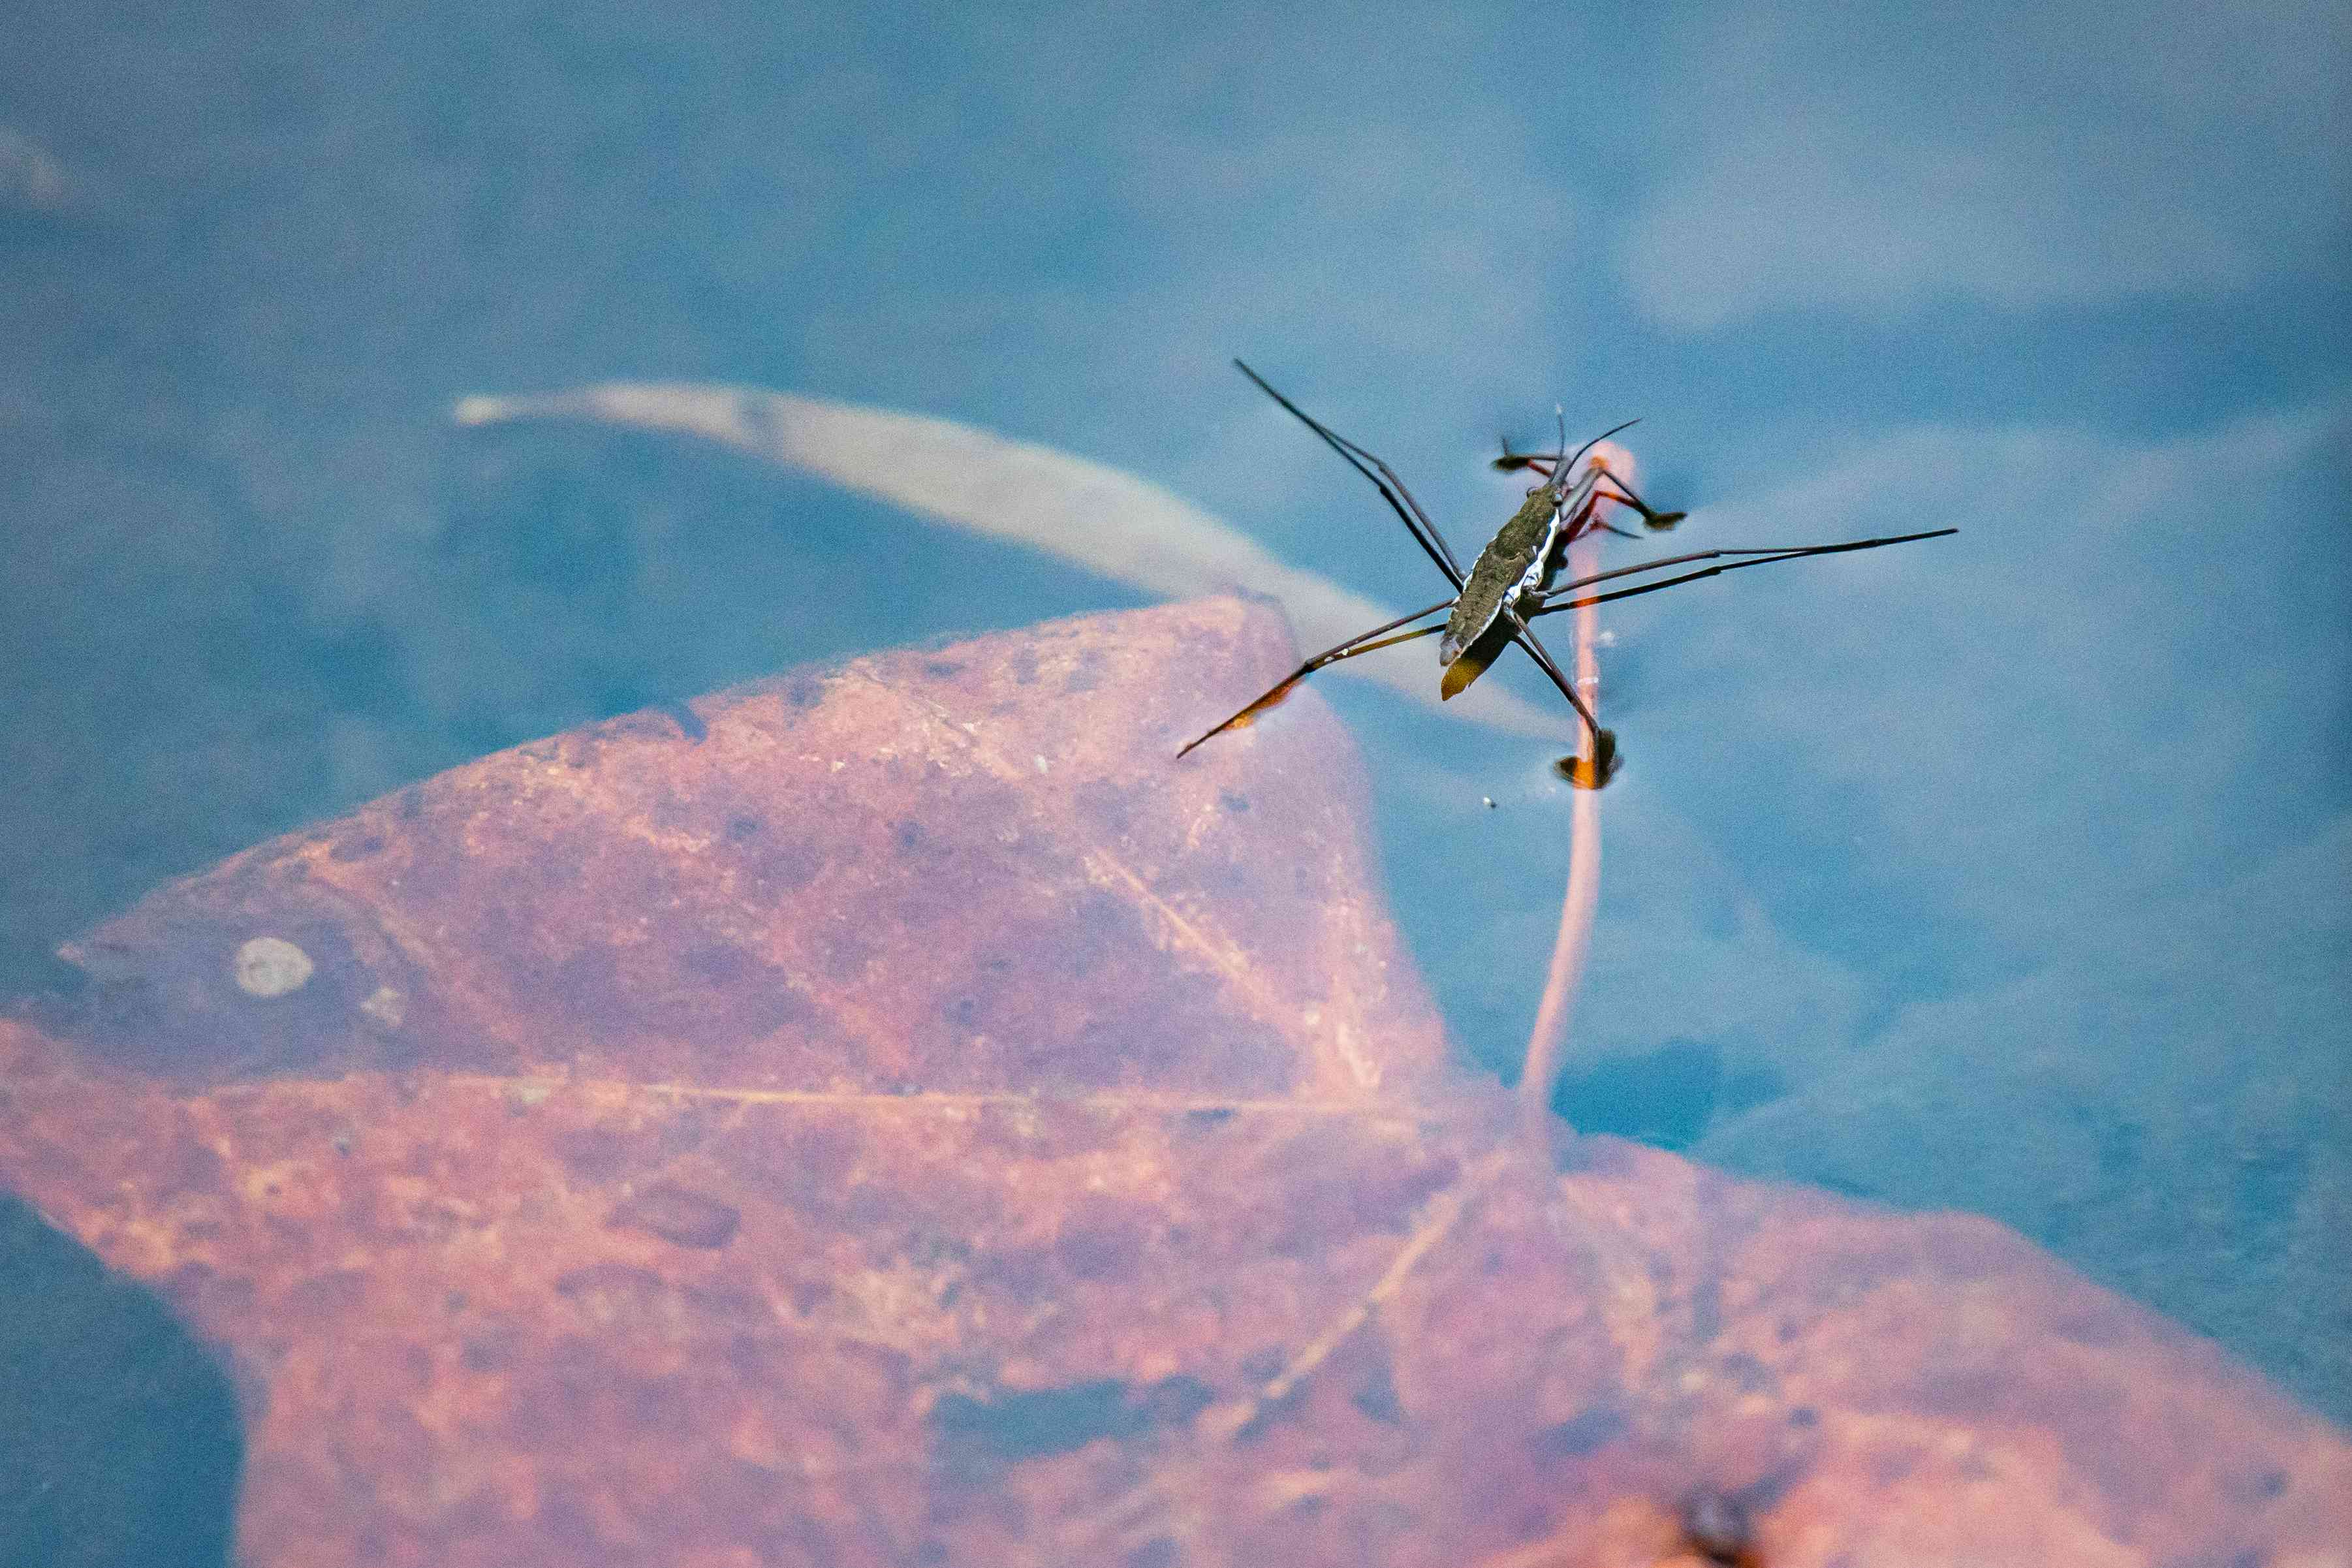 A water strider above a submerged leaf